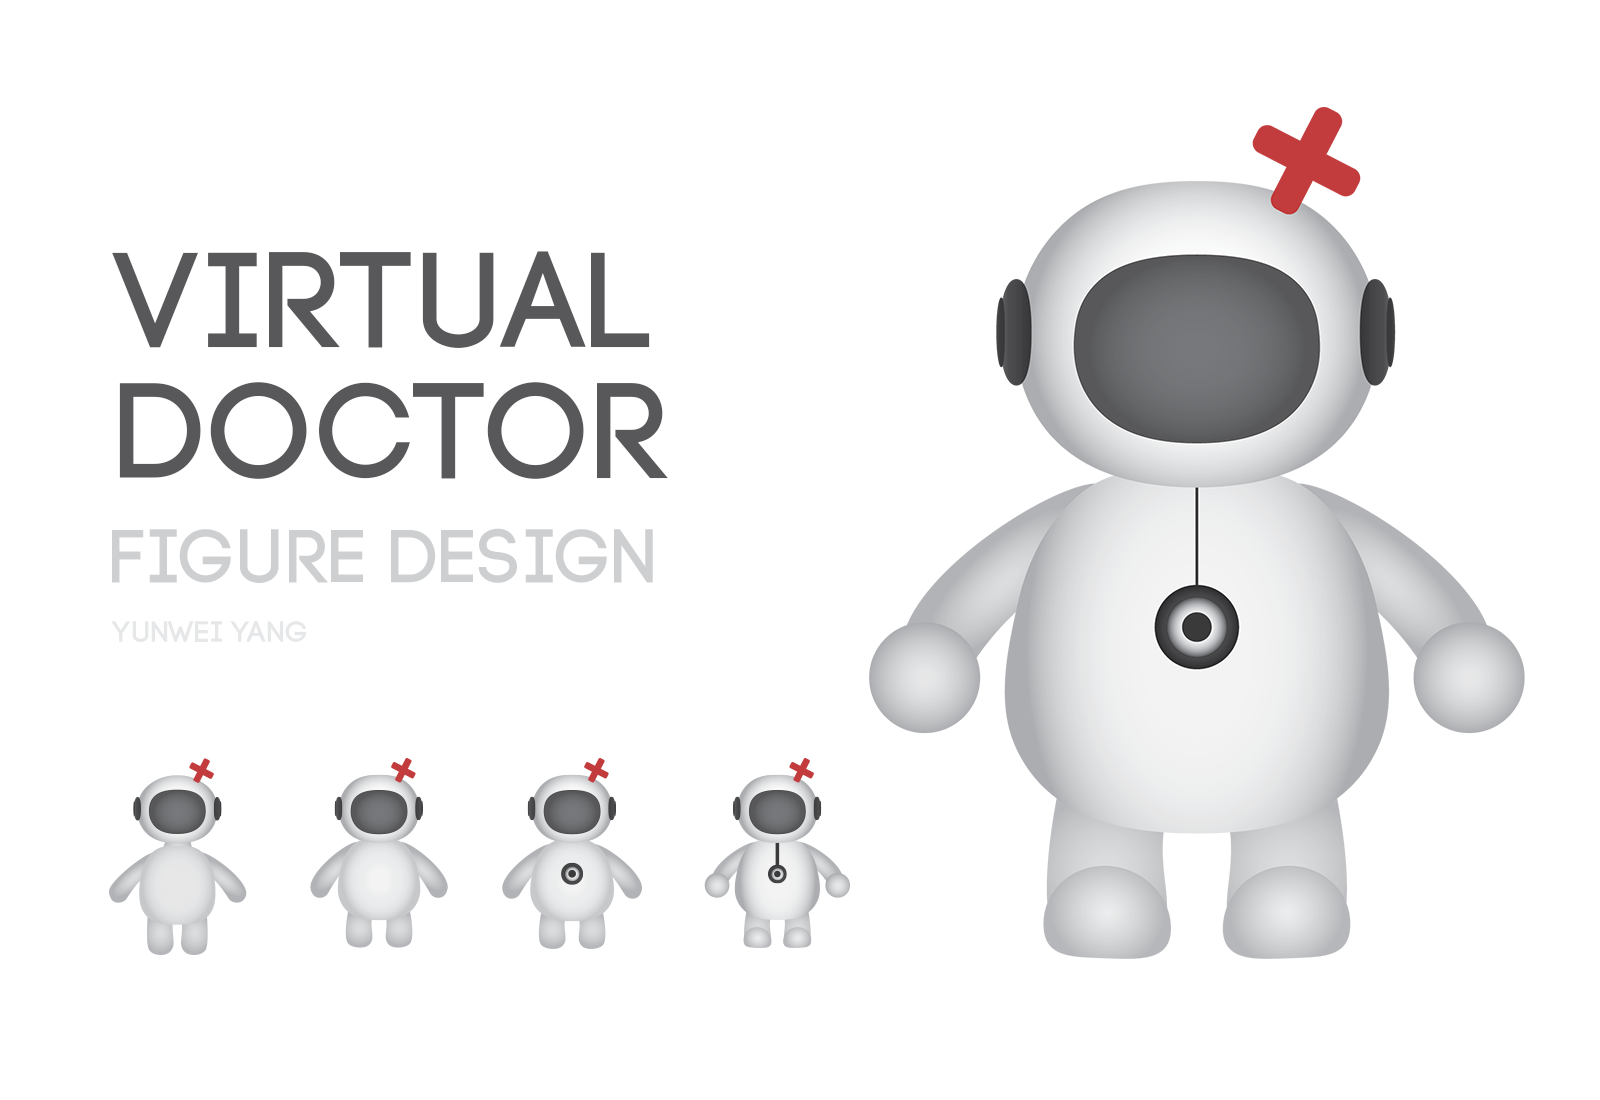 Figure design for an app called Virtual Doctor